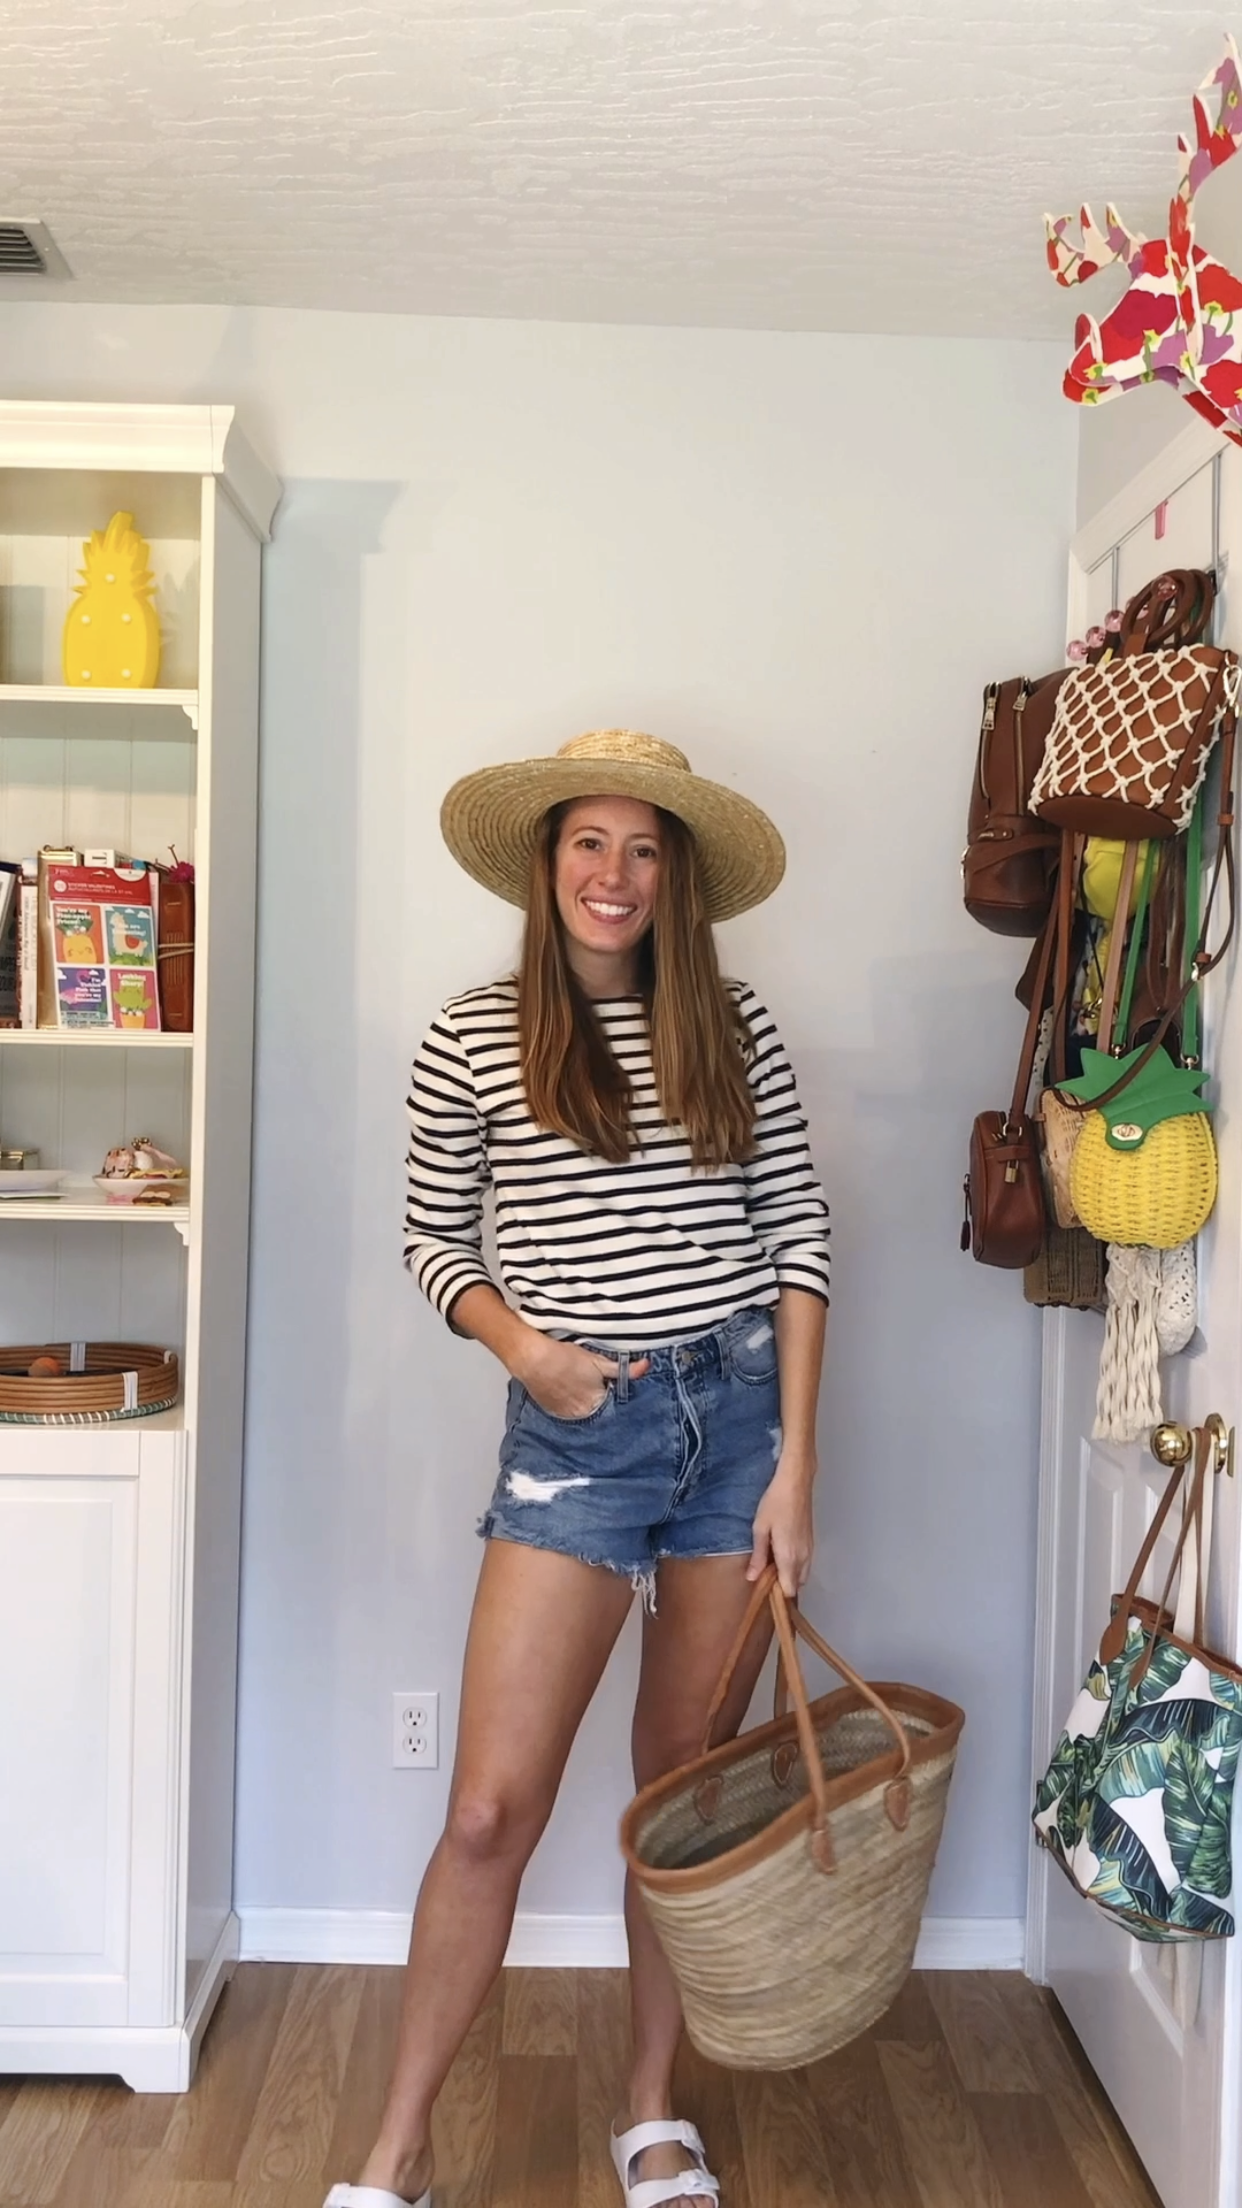 3 Ways to Wear a Long Sleeve Striped Shirt / Beach Outfit / Denim Shorts / Cutoff Shorts / Striped Top / Beach Bag / Rattan Accessories / Sunshine Style - A Florida Fashion Blog by Katie